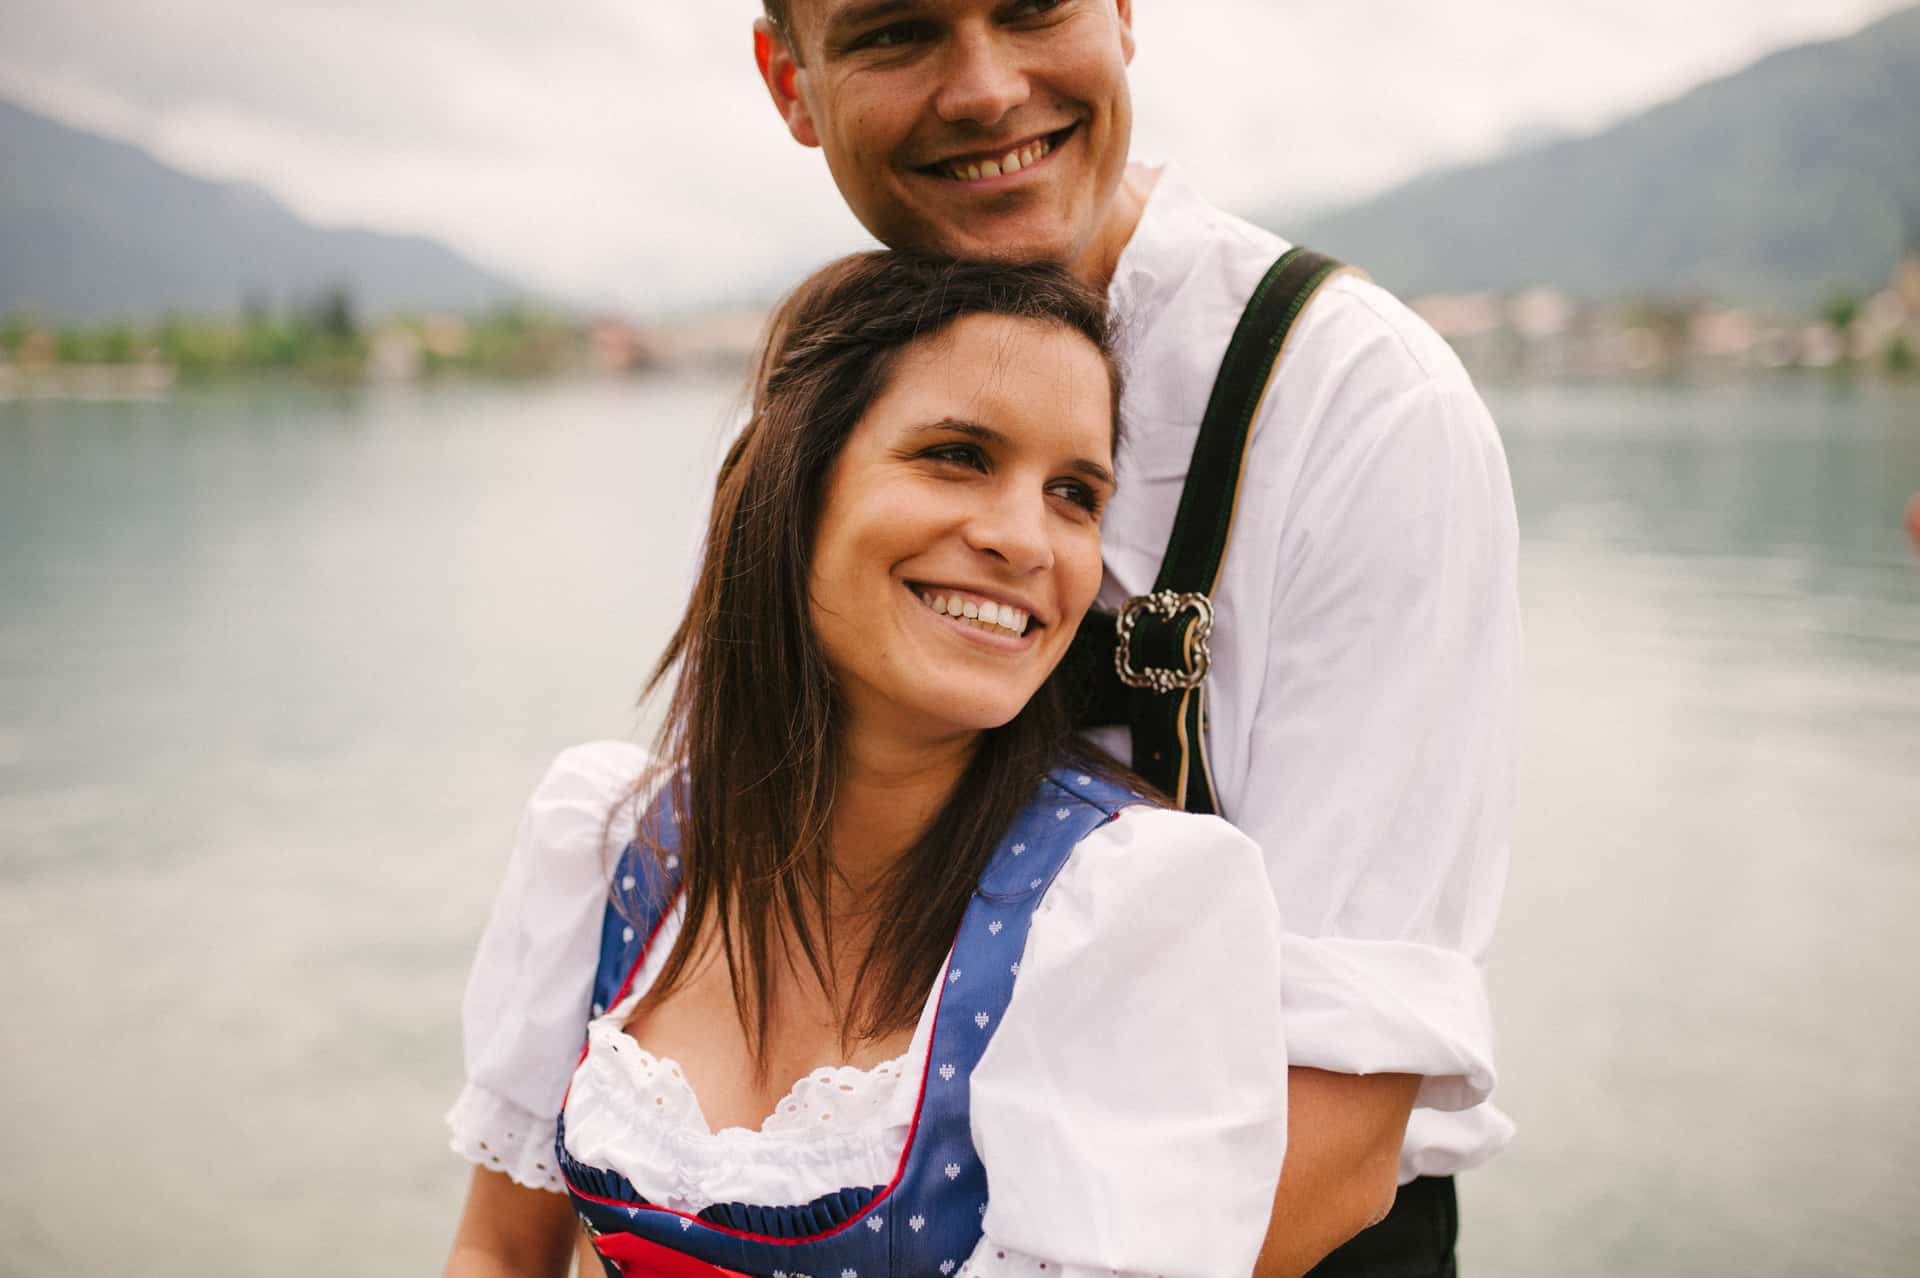 Best wedding images of the year (067 of 316)